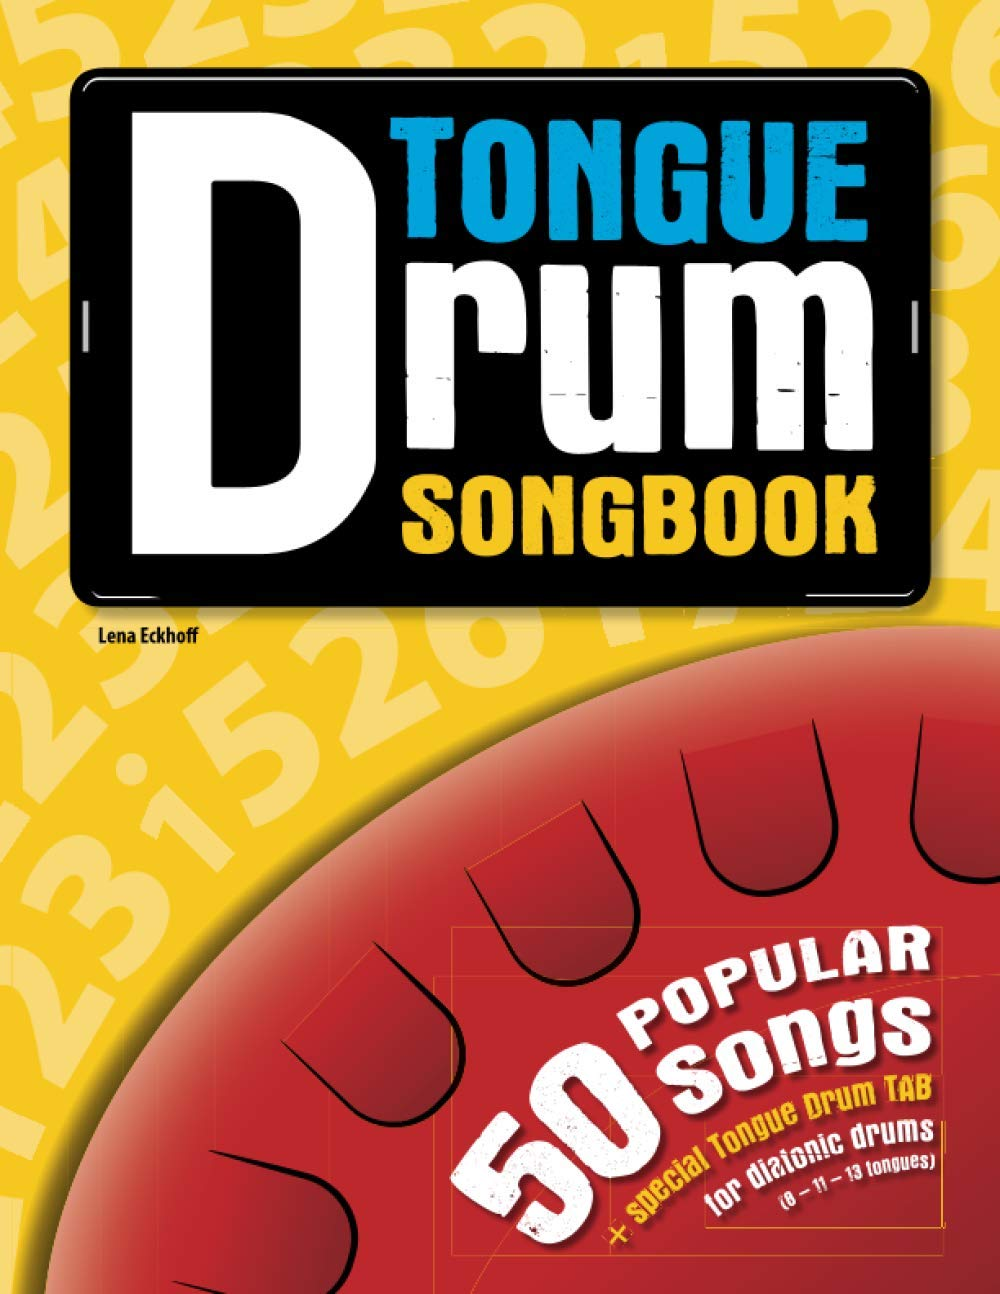 50 popular songs for Tongue Drum Tongue Drum Songbook